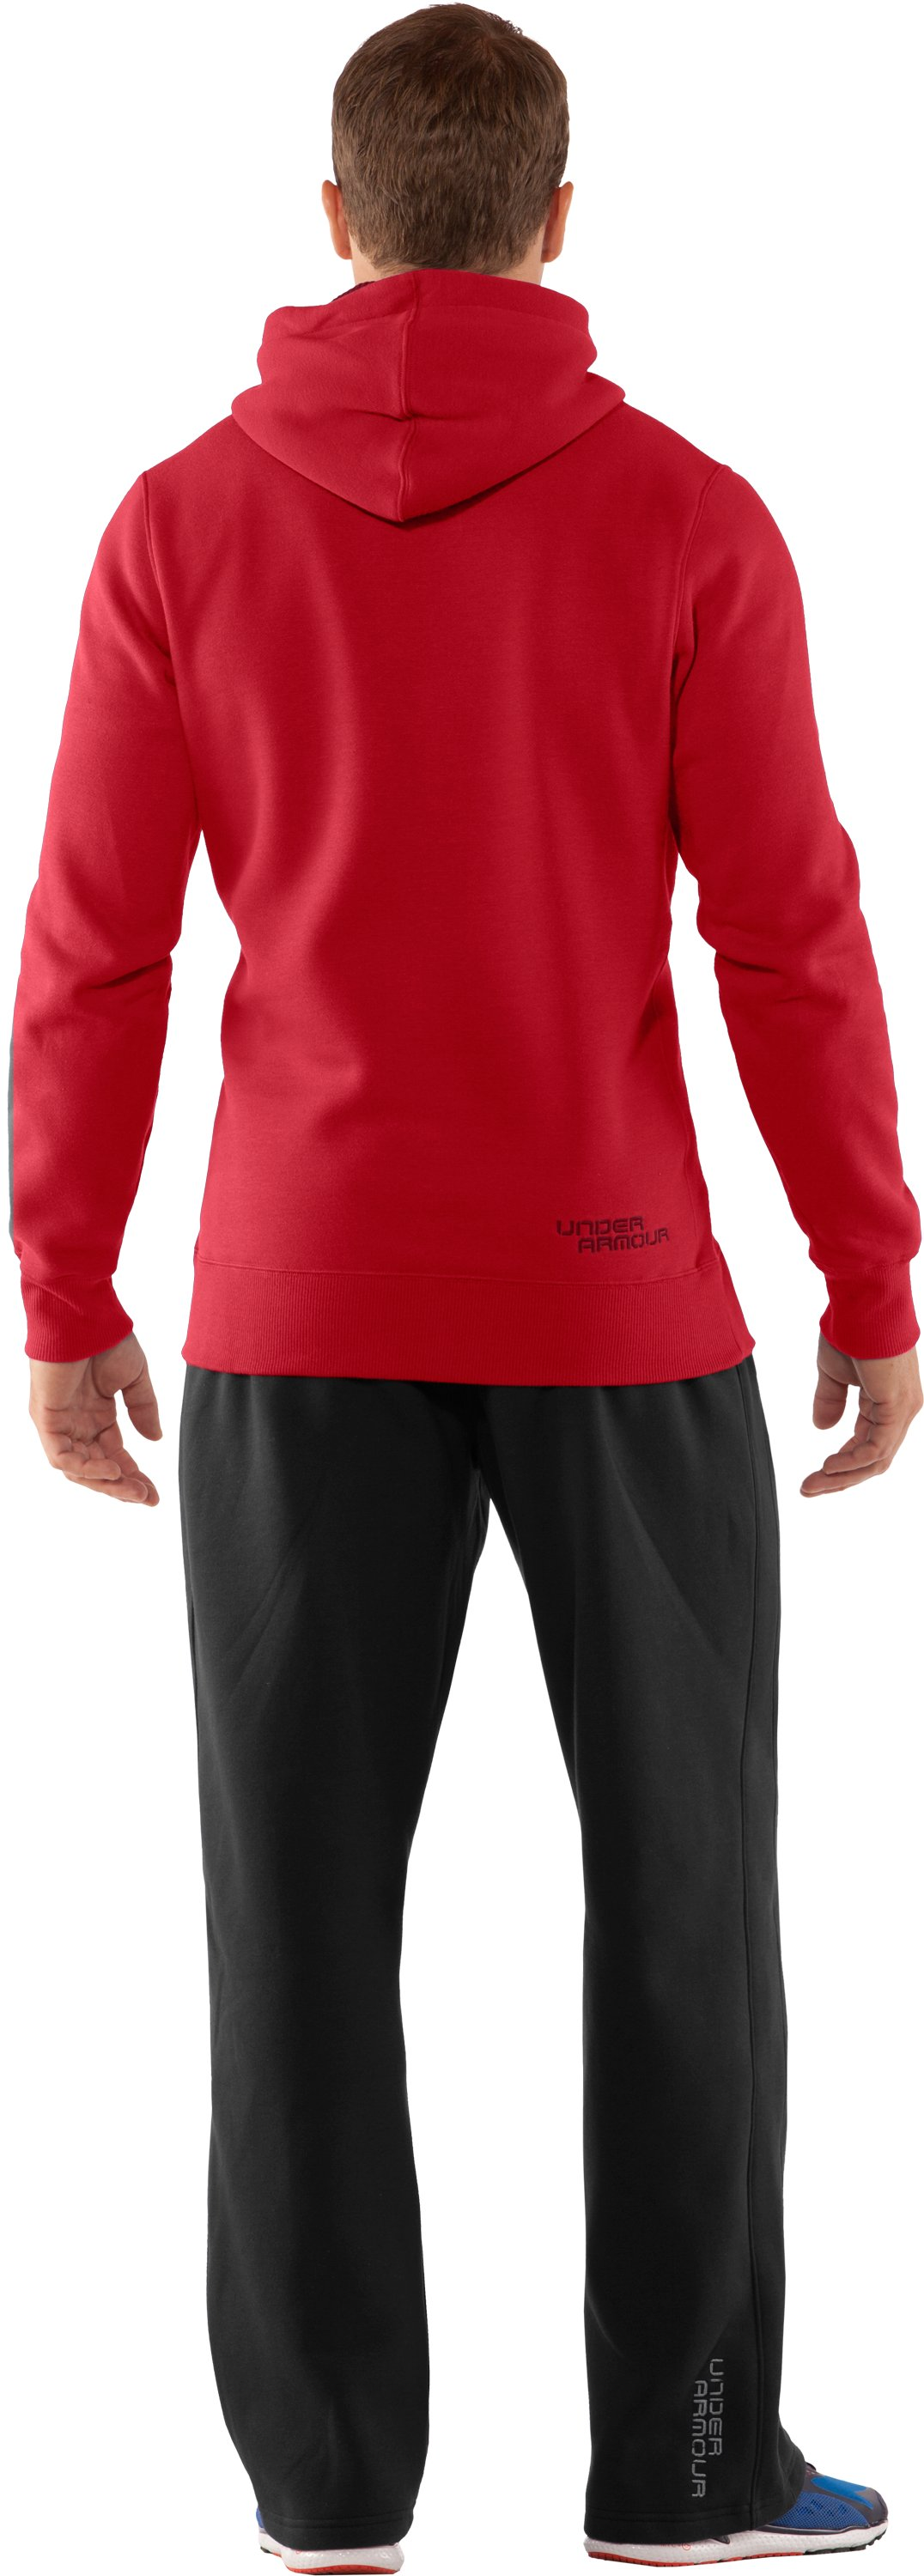 Men's Charged Cotton® Storm Pullover Hoodie, Red, Back